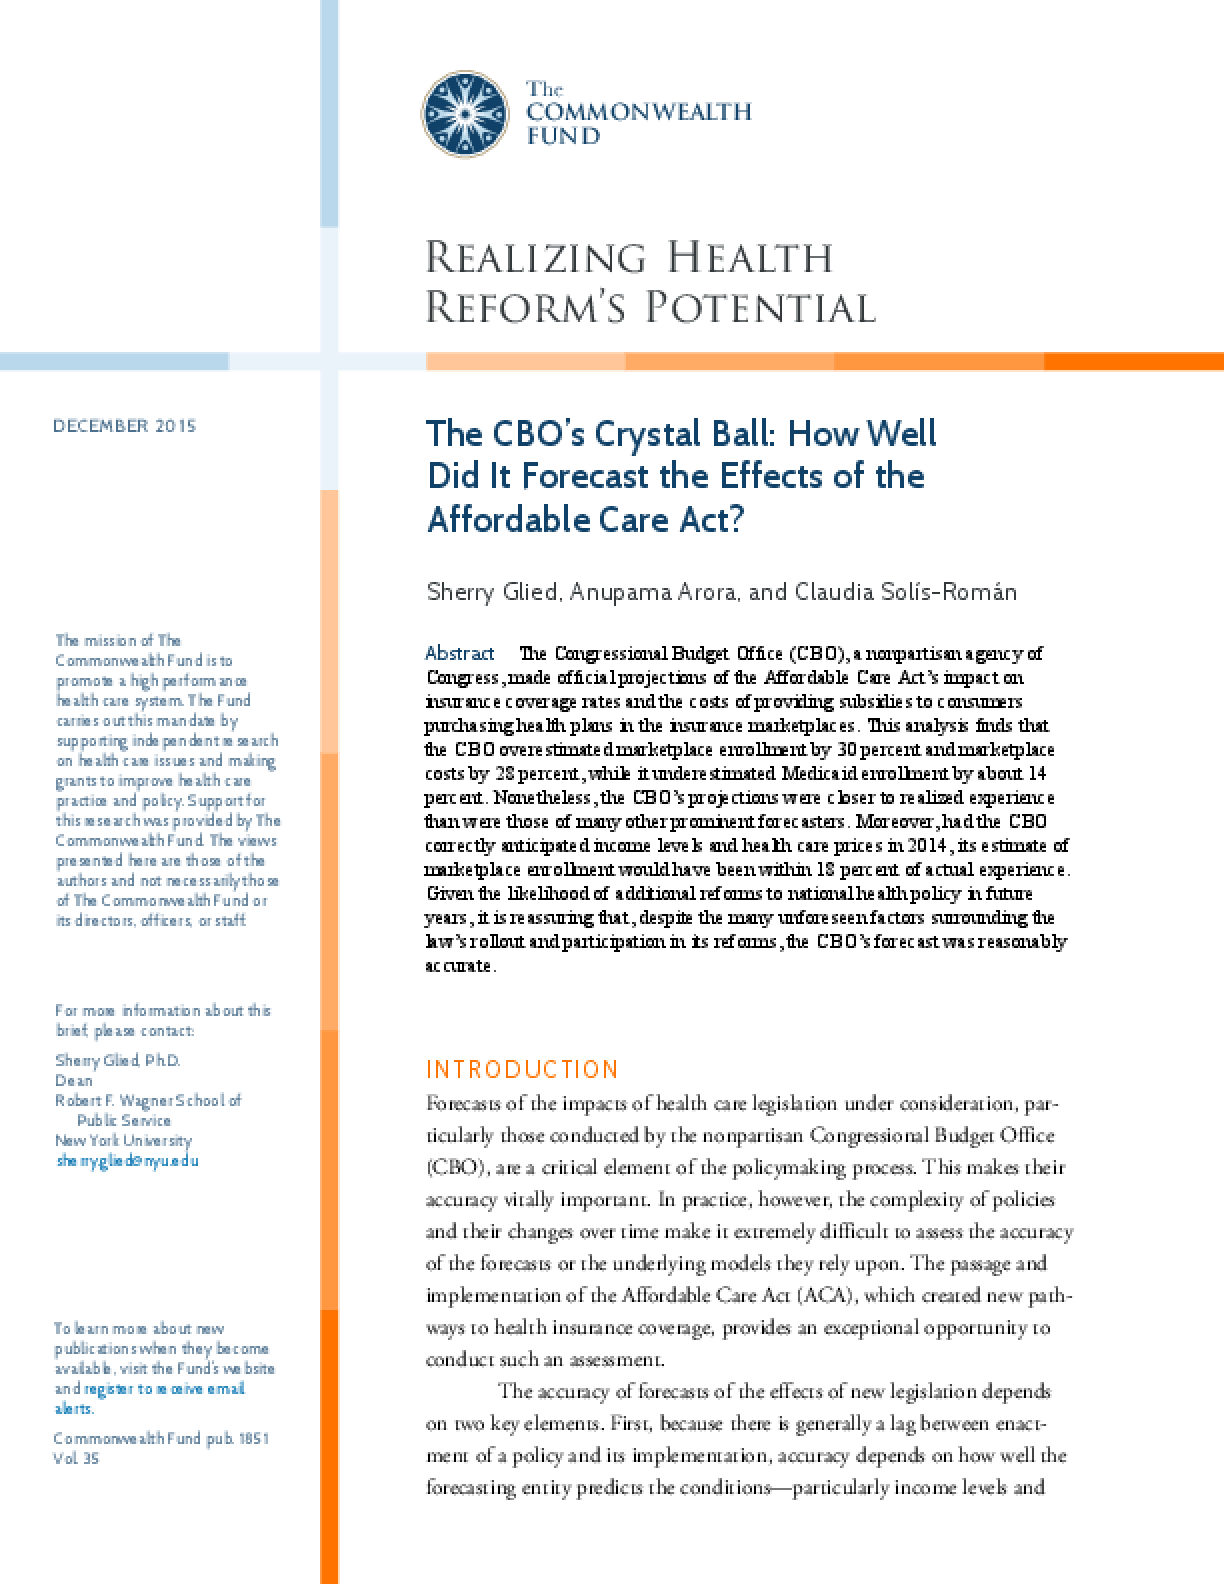 The CBO's Crystal Ball: How Well Did It Predict the Effects of the Affordable Care Act?